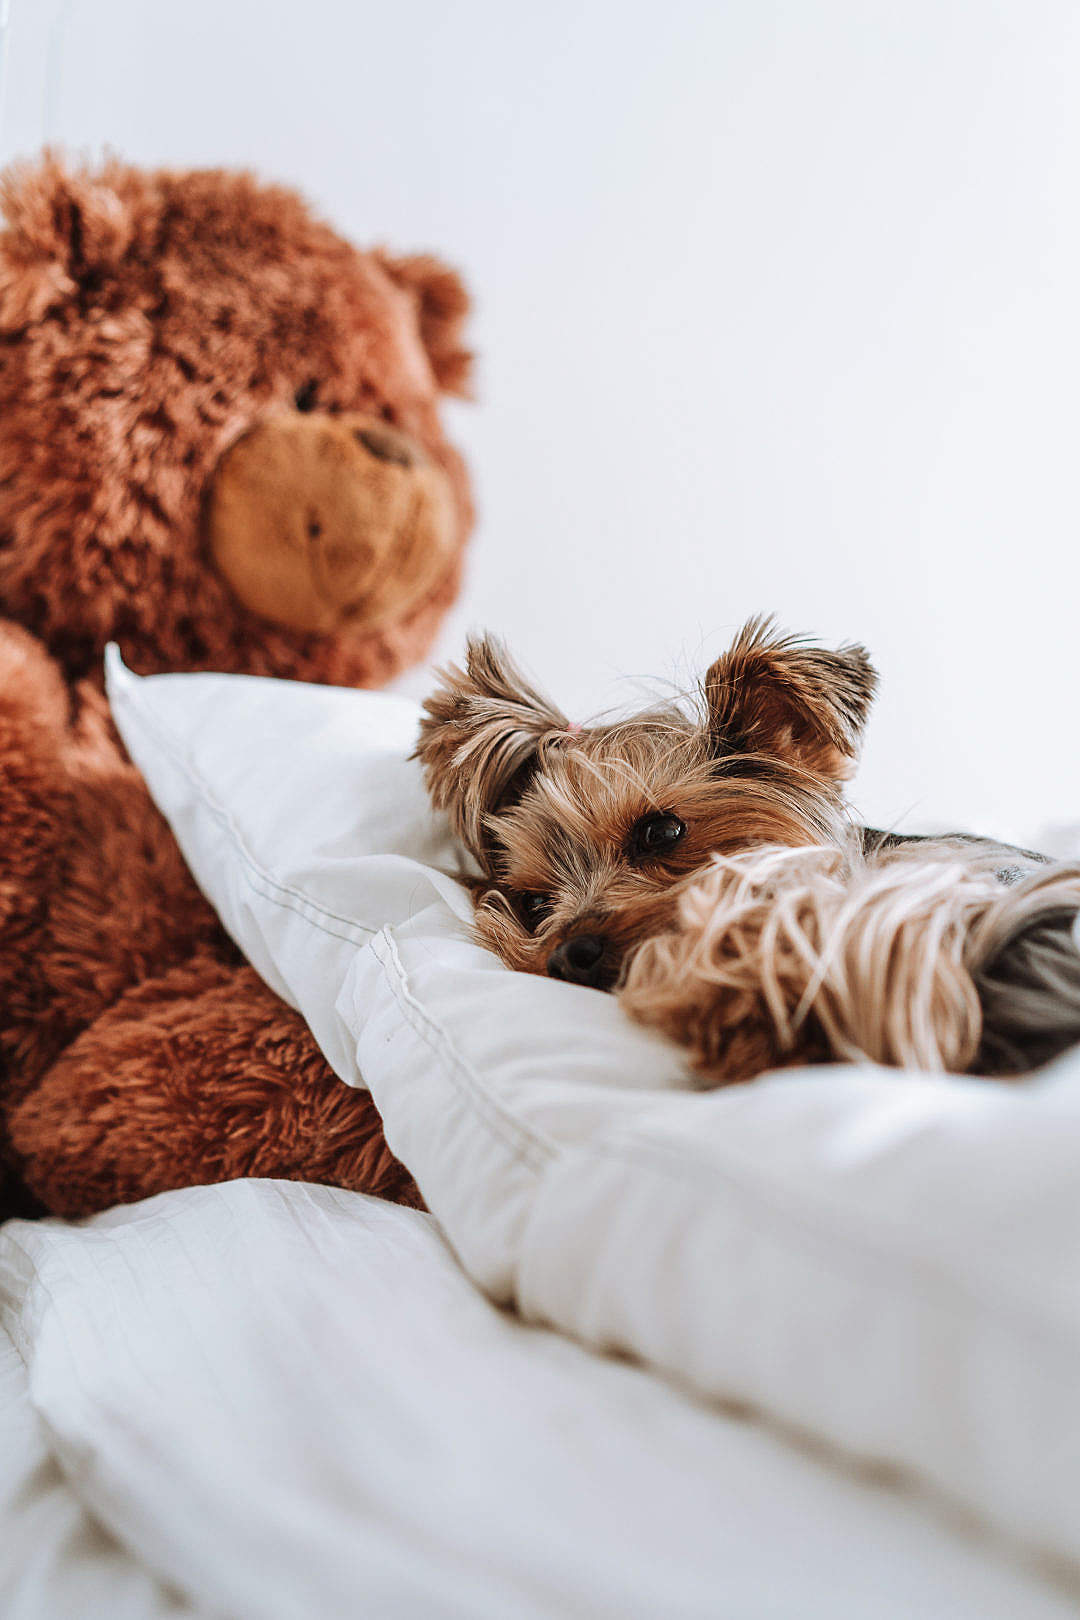 Download A Dog Lying on a Large Pillow in The Bed FREE Stock Photo